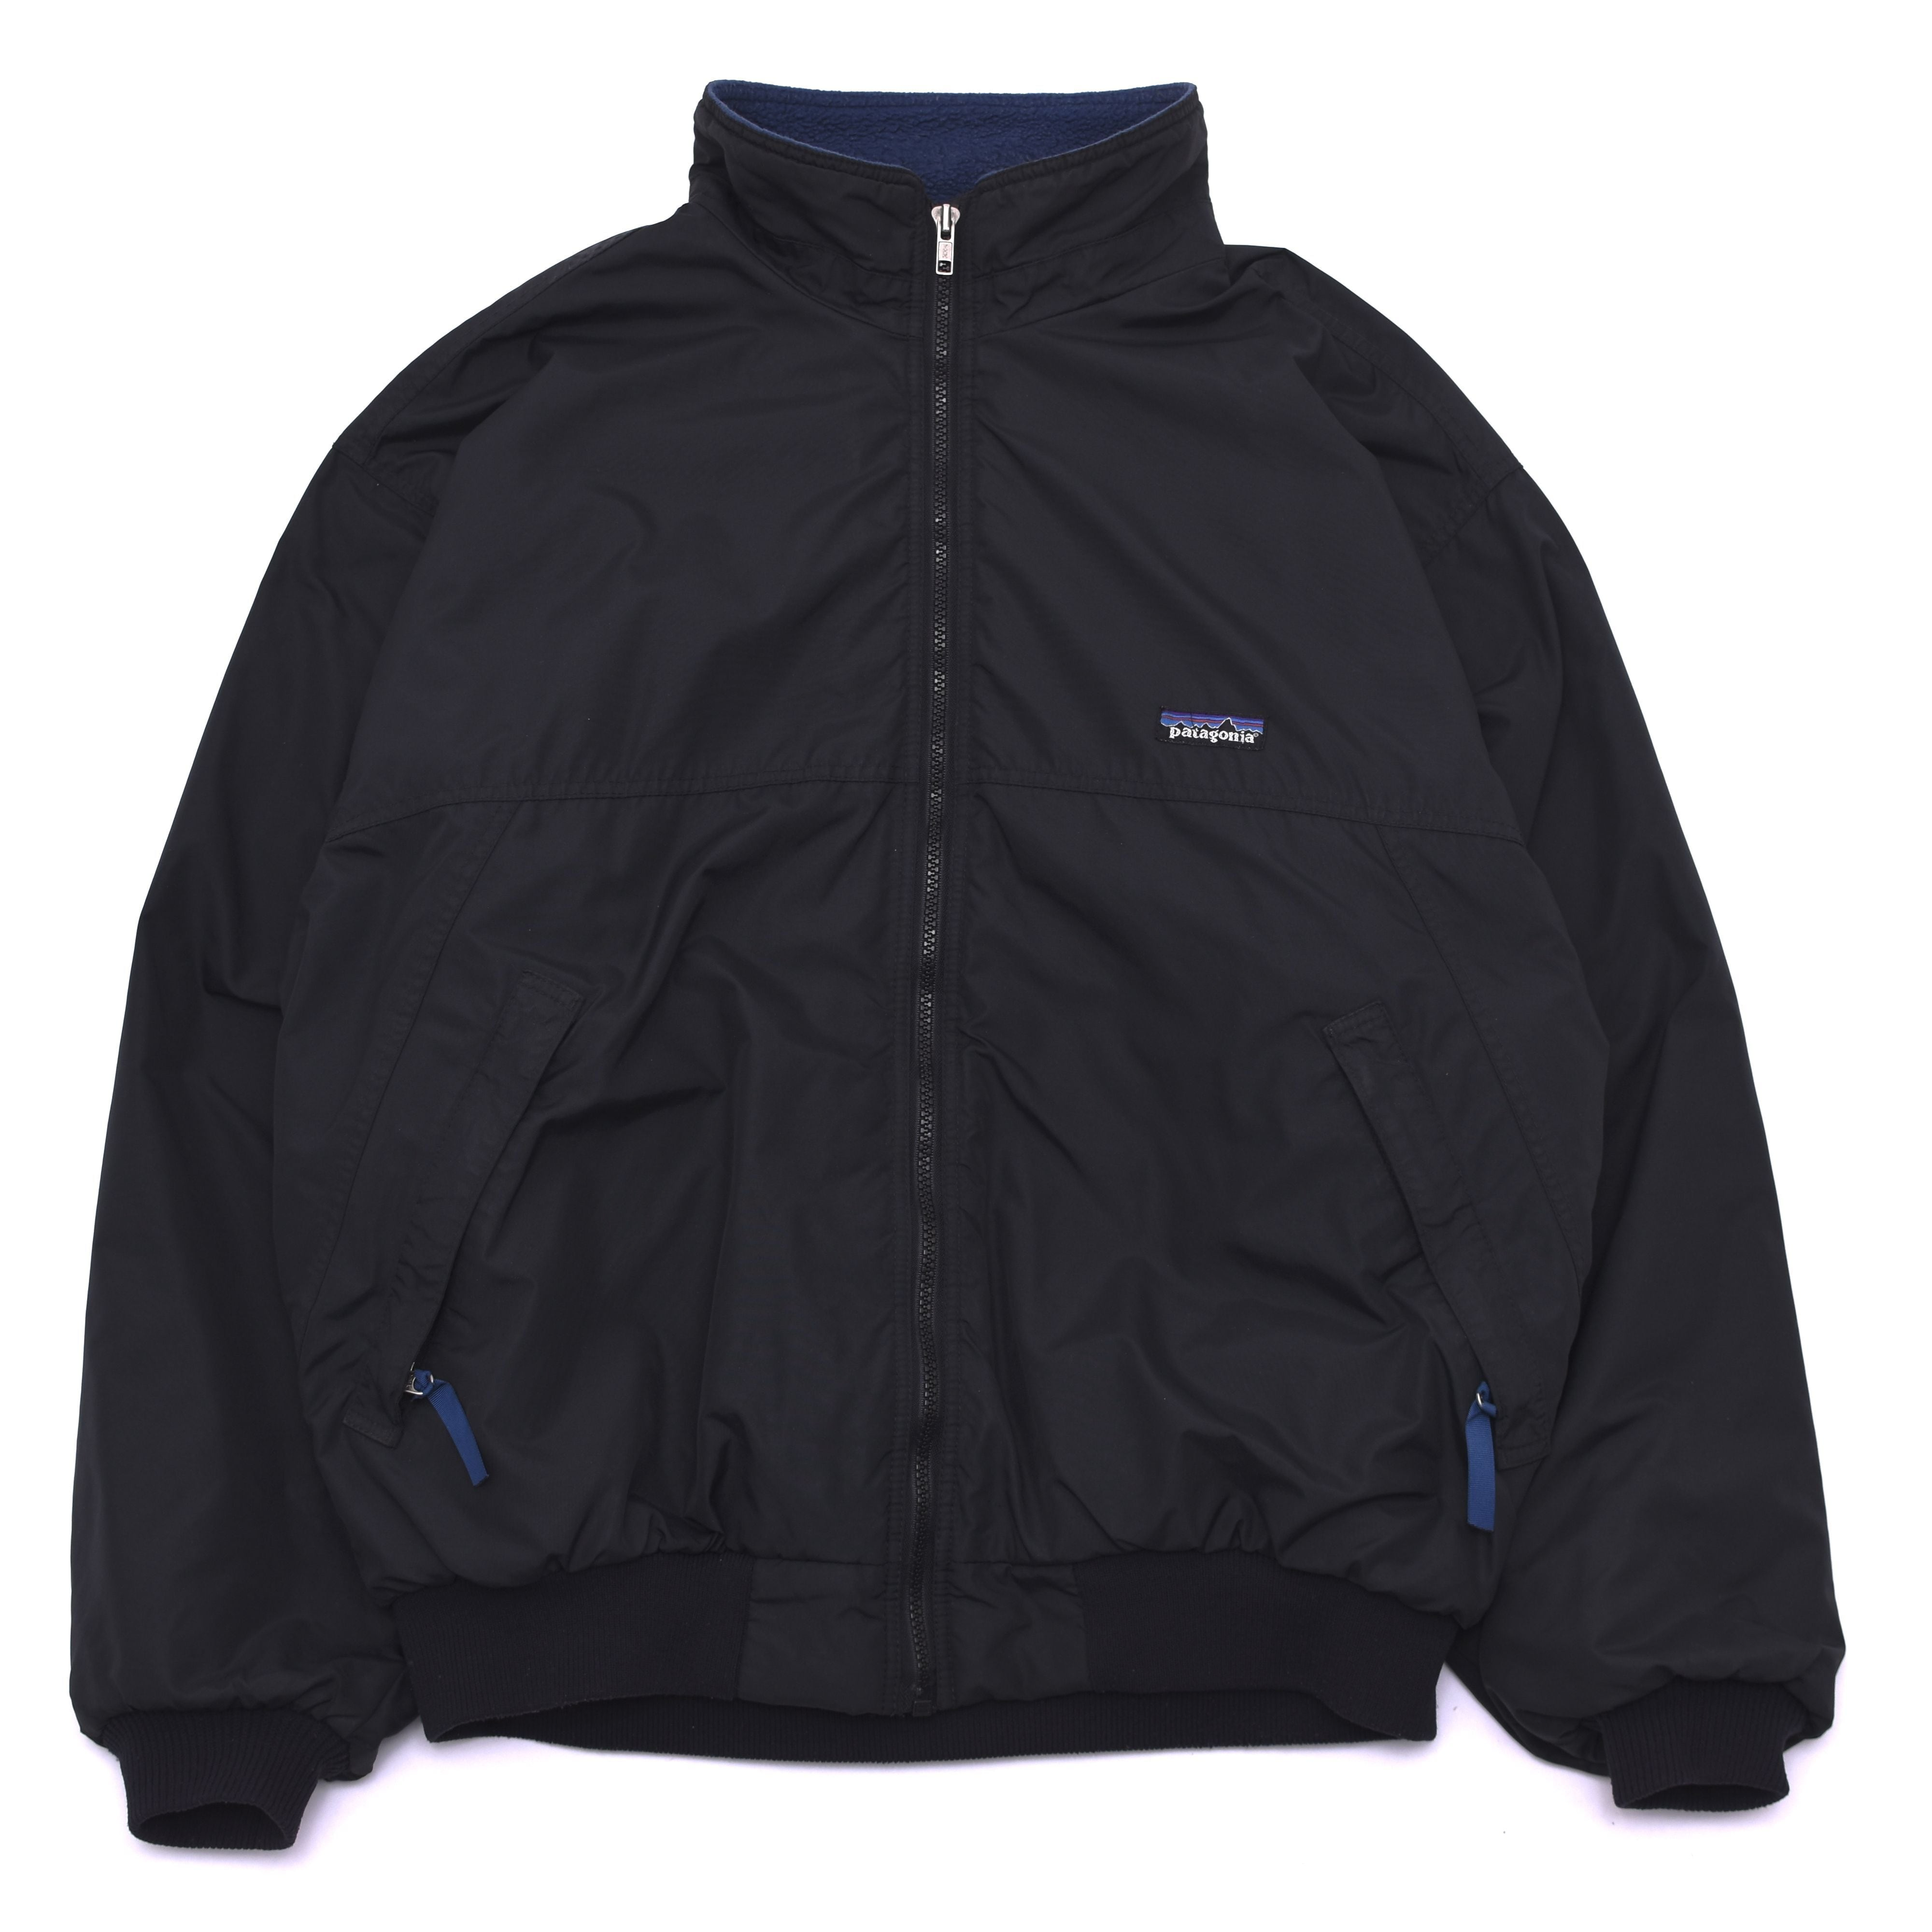 Made in USA patagonia shelled synchilla